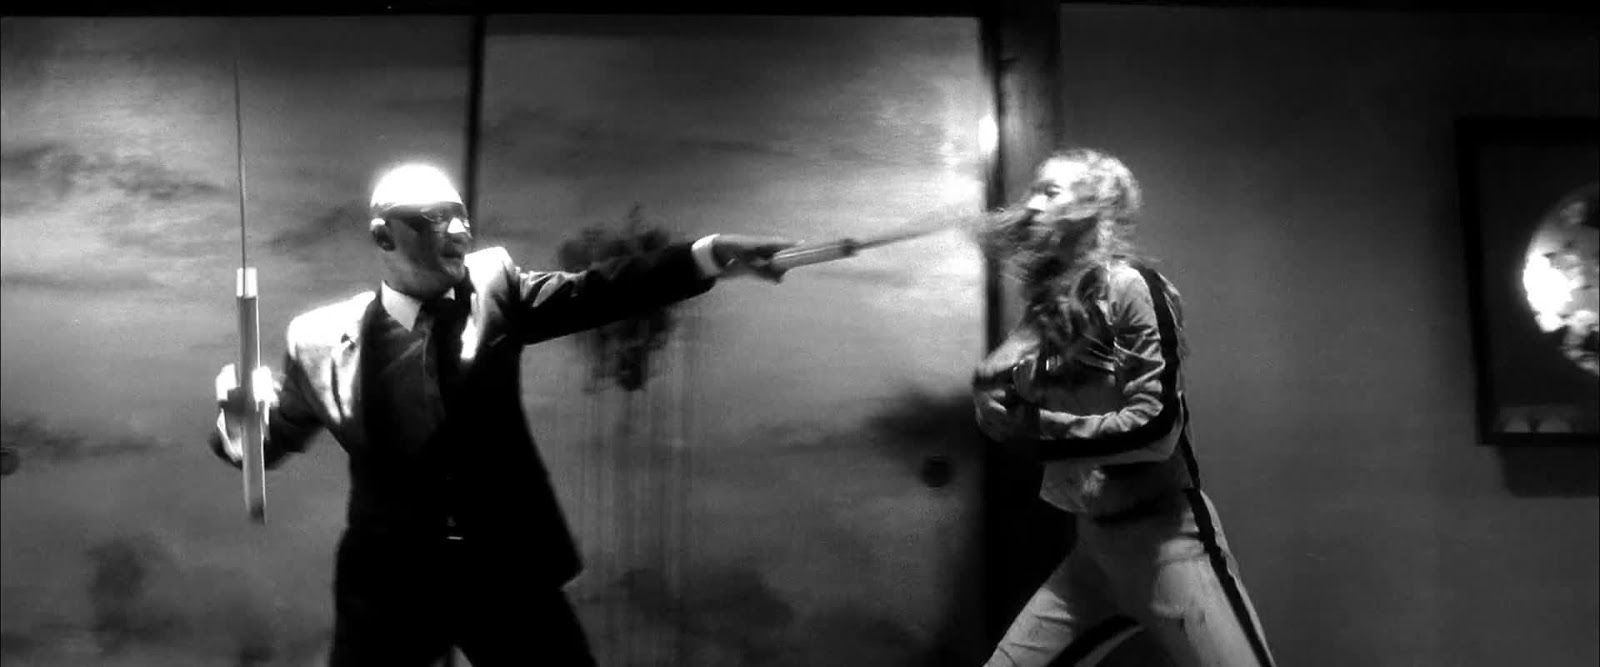 Top 52 Things I Love About Kill Bill Vol 1 That No One